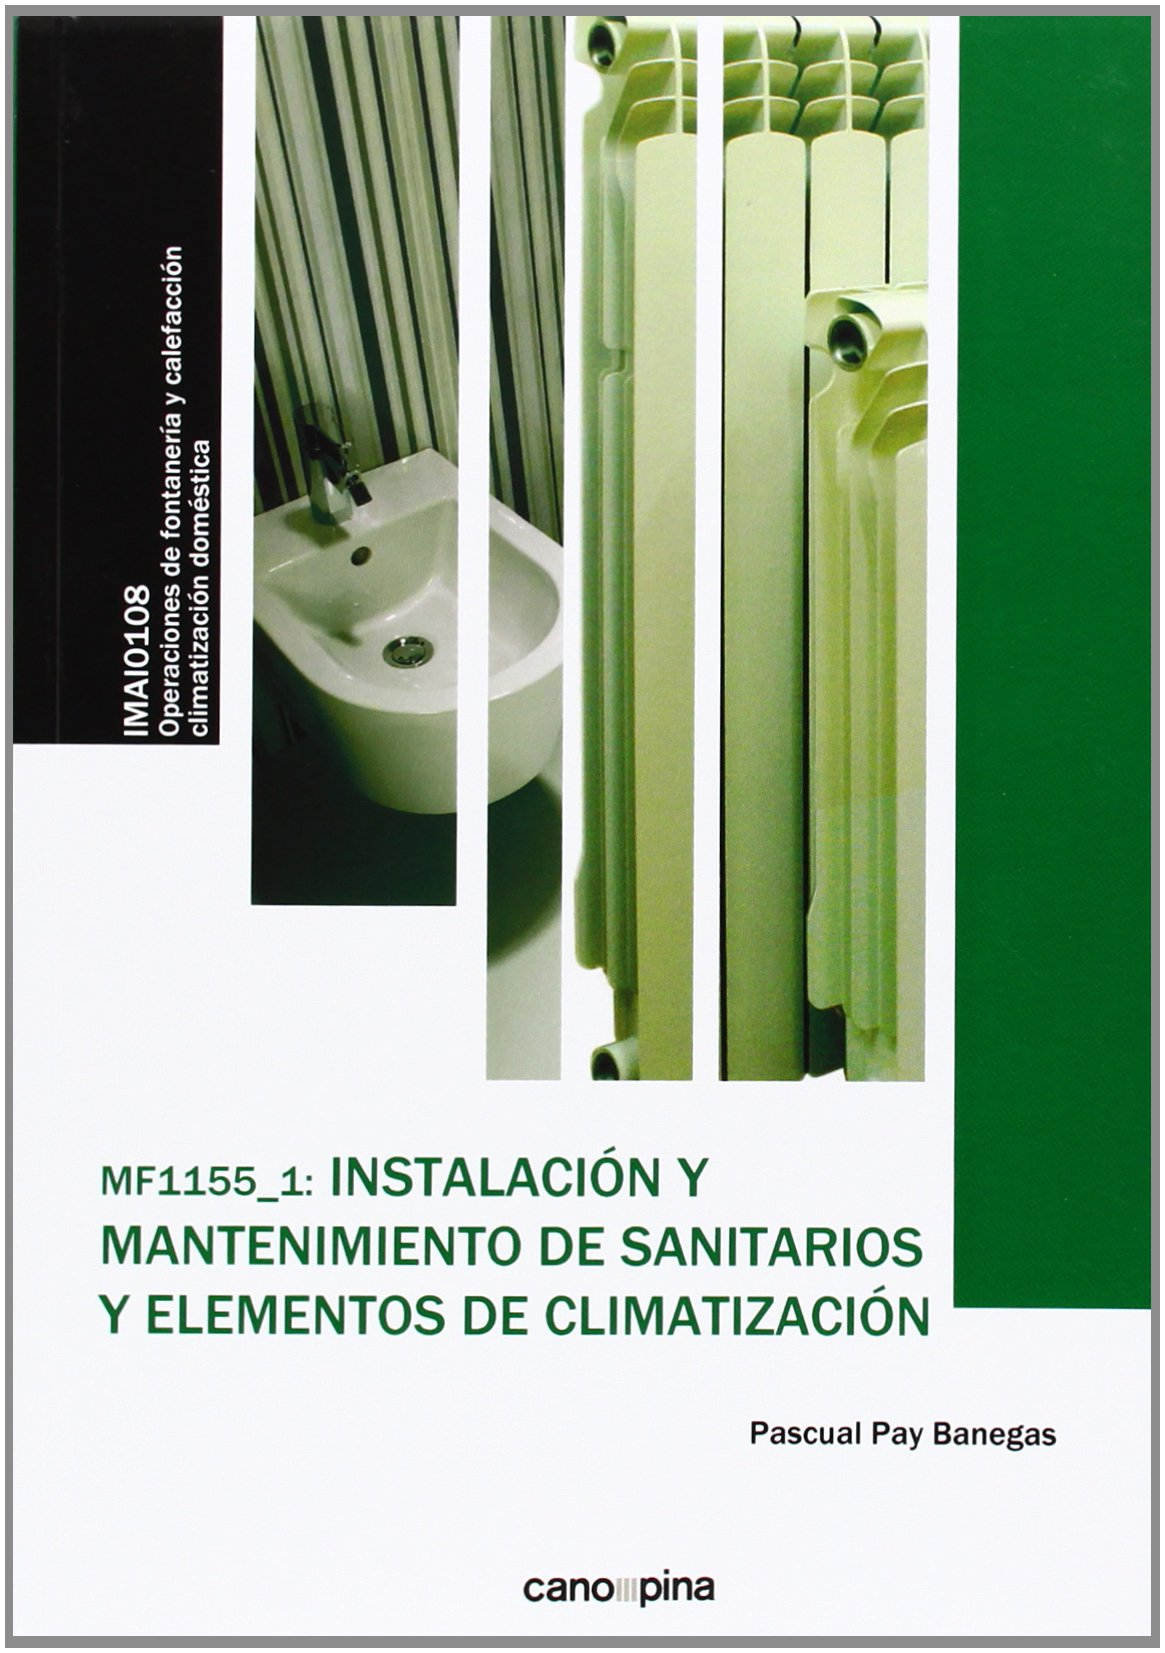 Download INSTALACION Y MANTENIMIENTO SANITARIOS ELEMENTOS CLIMATIZACION MF11551 ebook